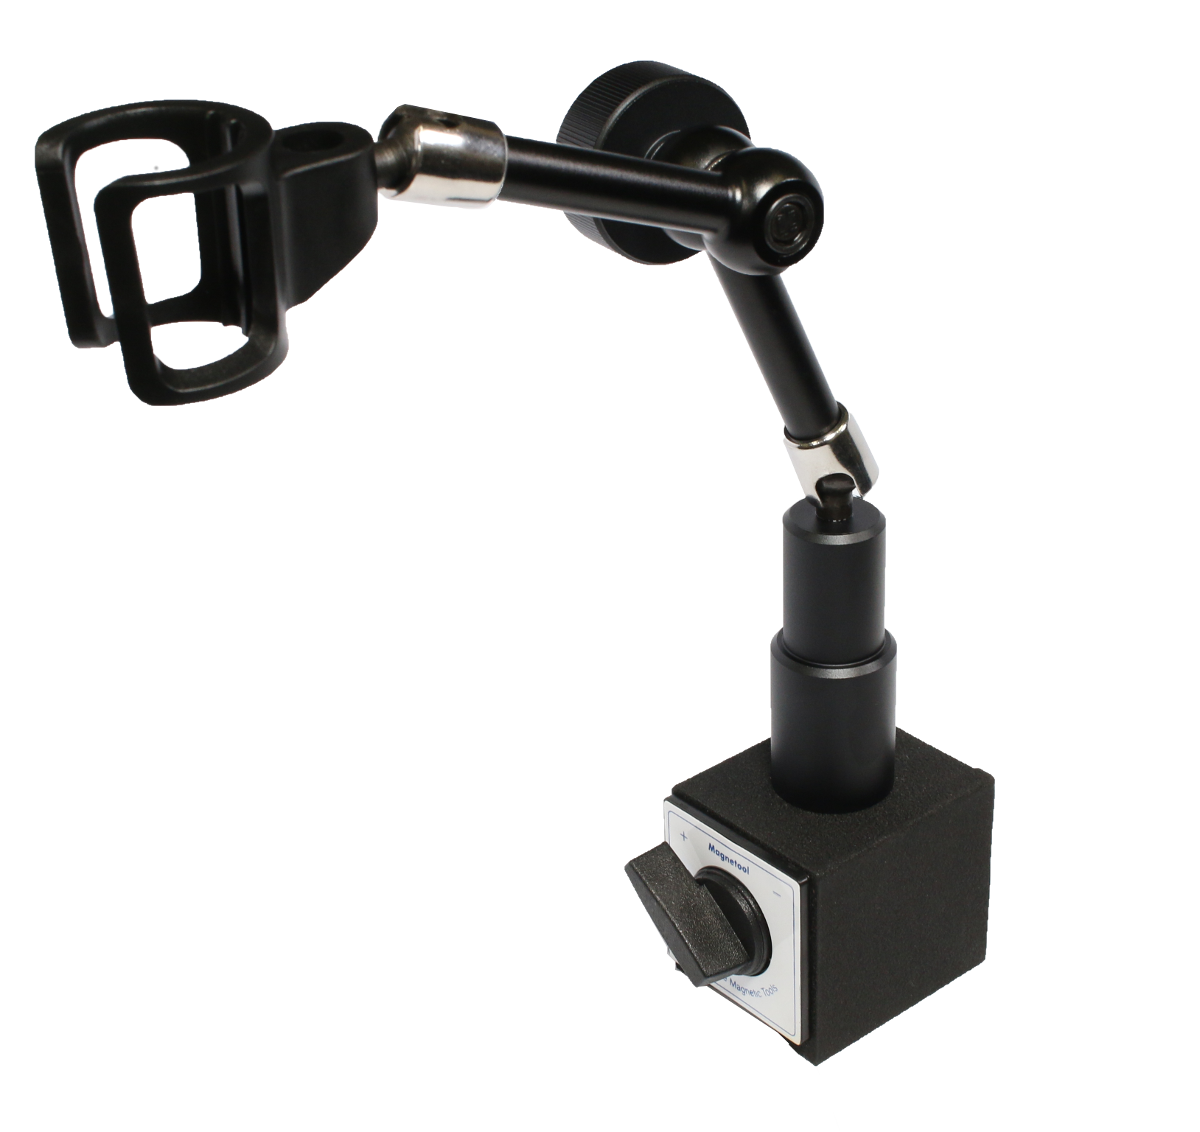 MS33M 360 Articulating Desktop Stand with Magnetic Base